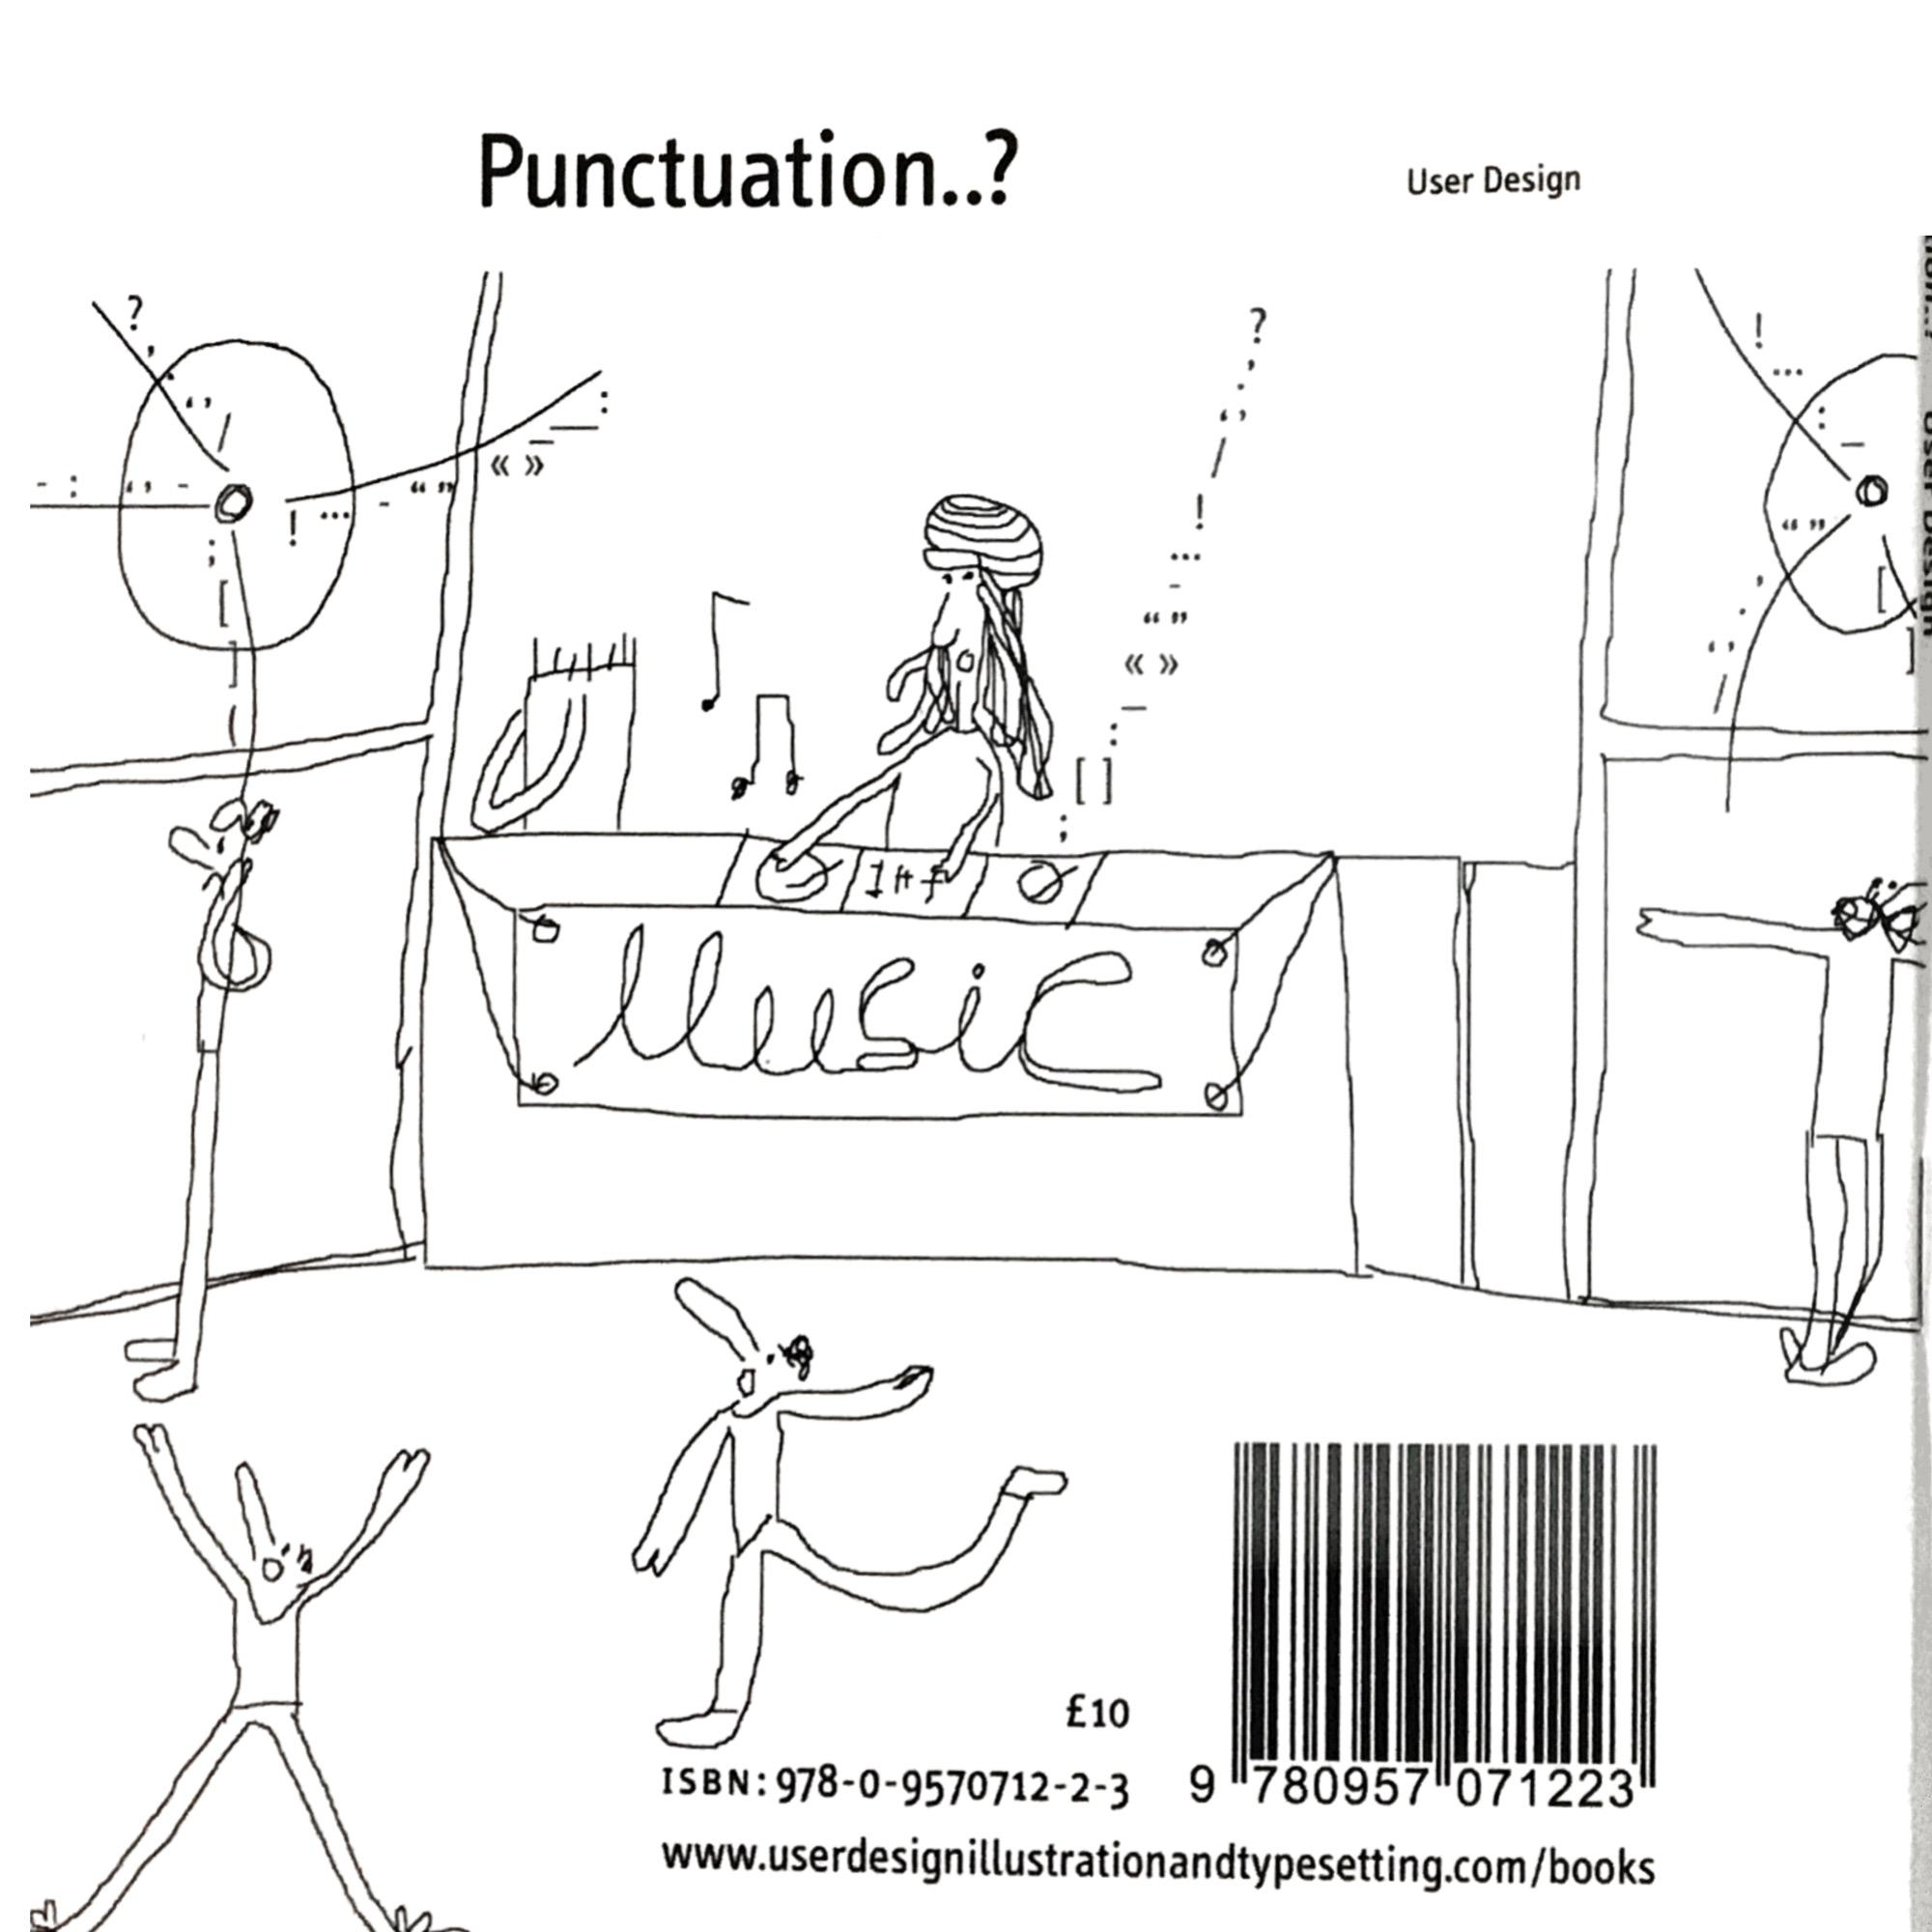 587. Punctuation Rules / Book Review (Part 1)